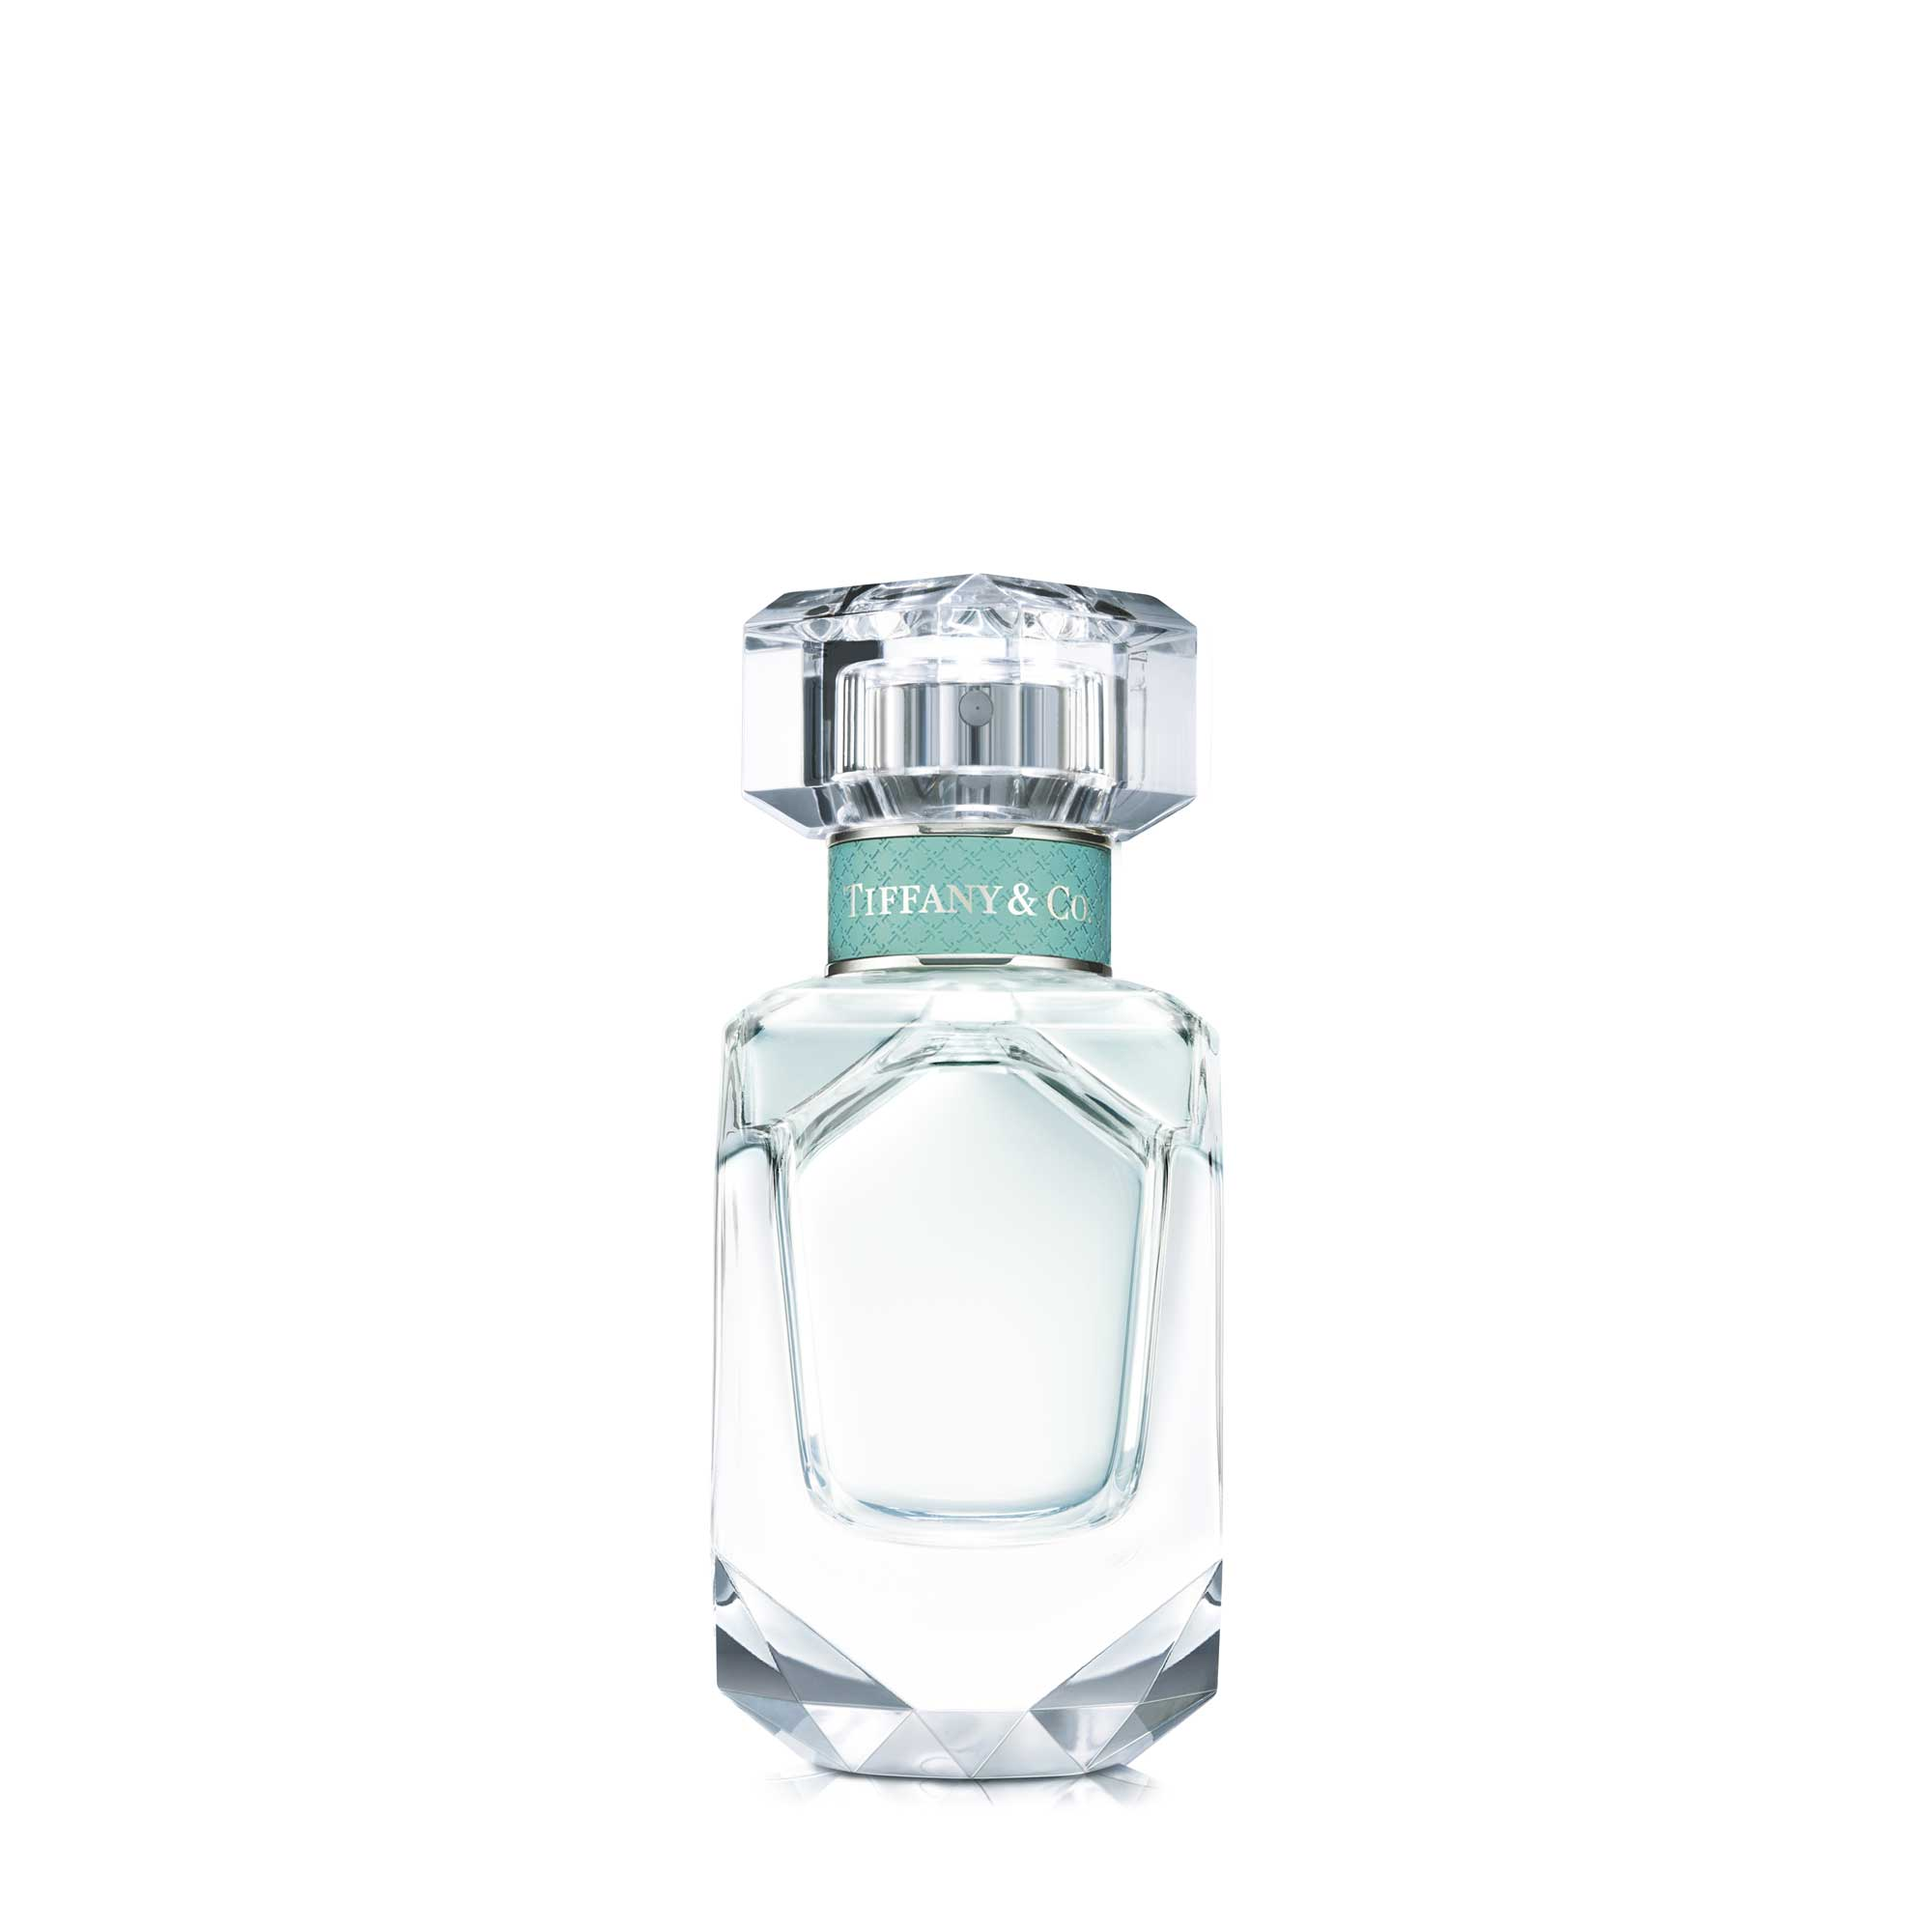 Tiffany & Co. Eau de Parfum  - Tiffany & Co.